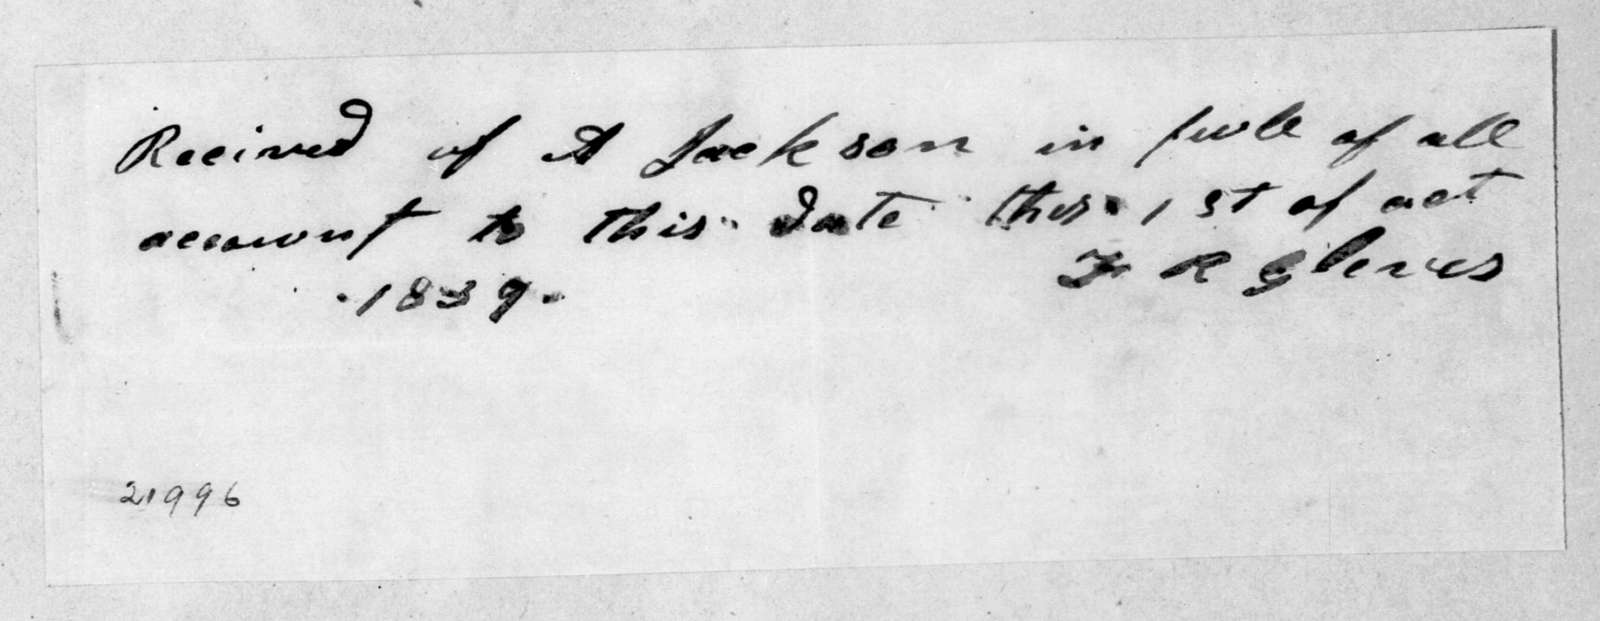 F. R. Gleaves to Andrew Jackson, October 1, 1839